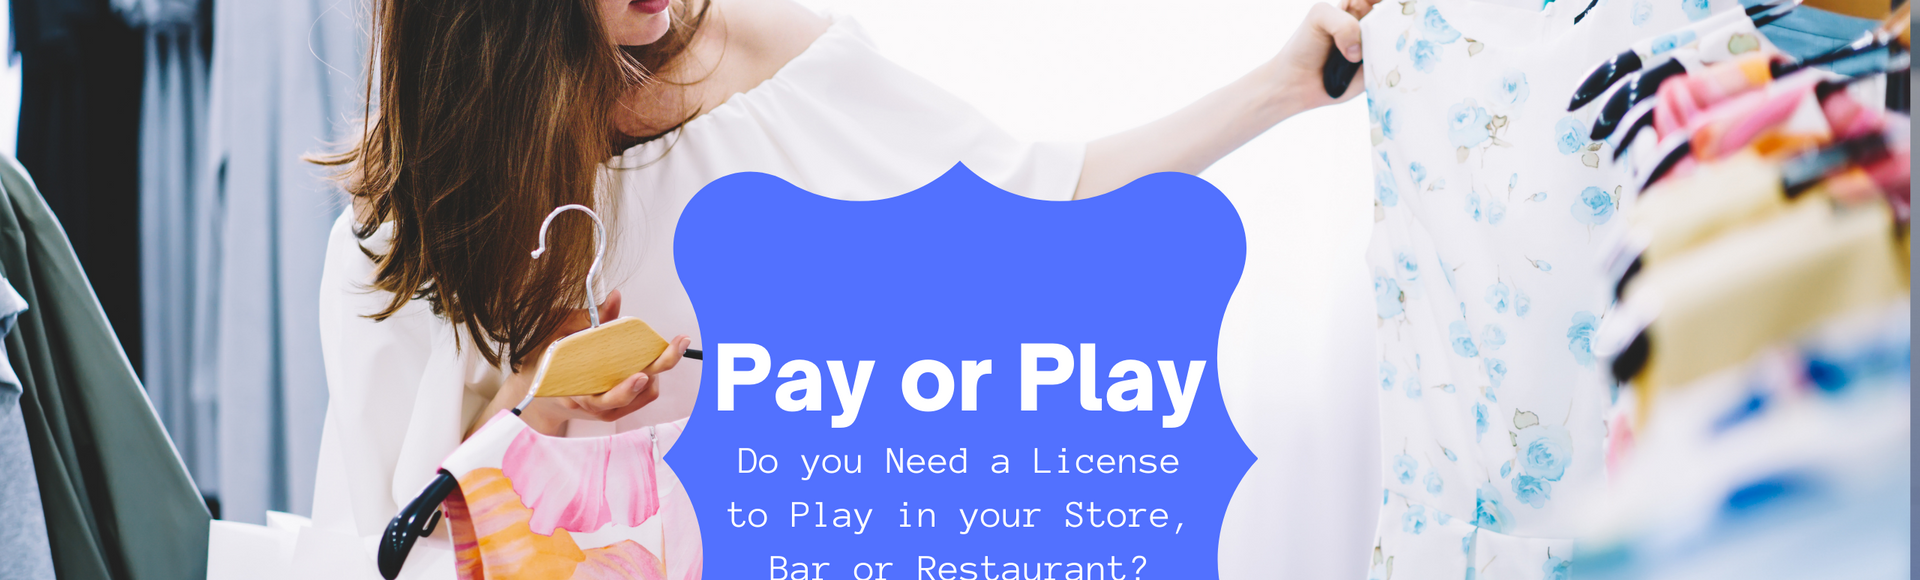 pay or play (1).png